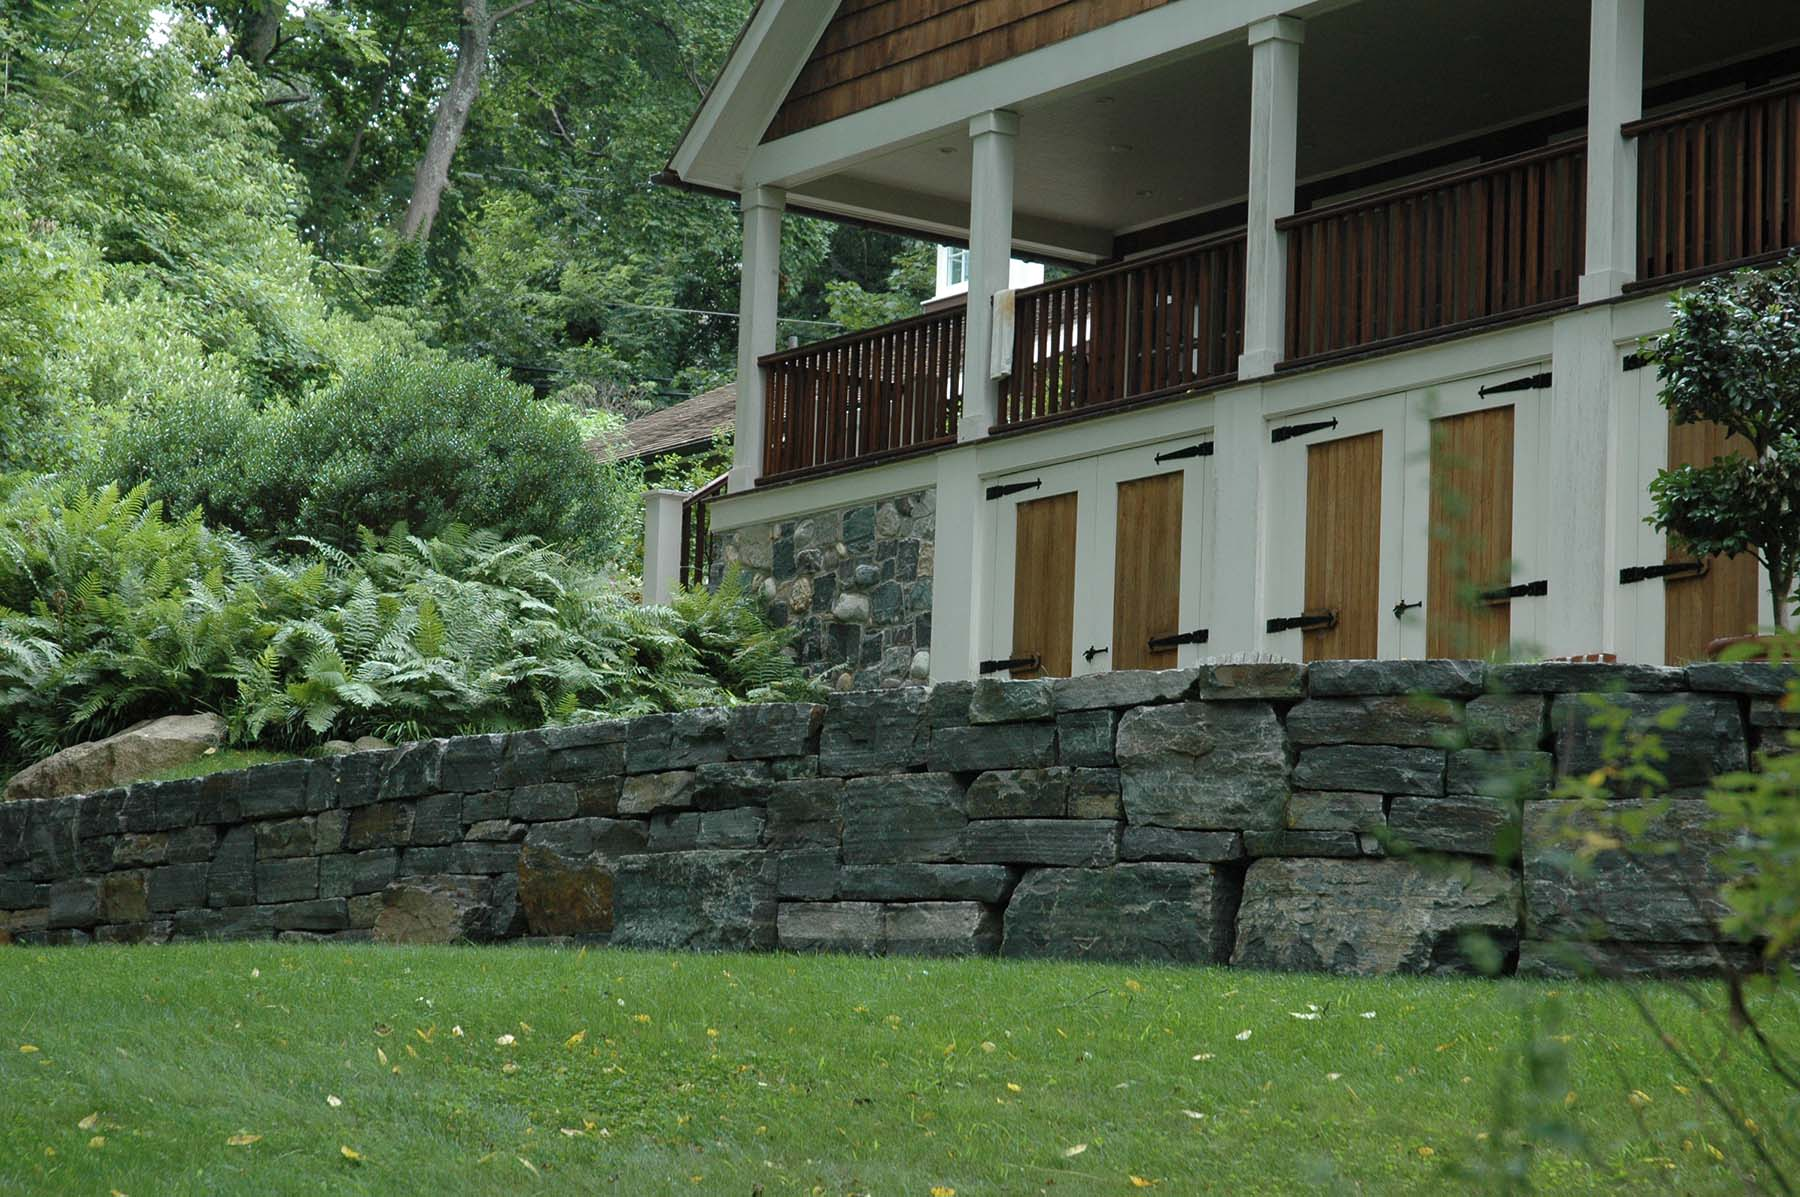 saratoga granite mosaic natural stone retaining wall outside residential home